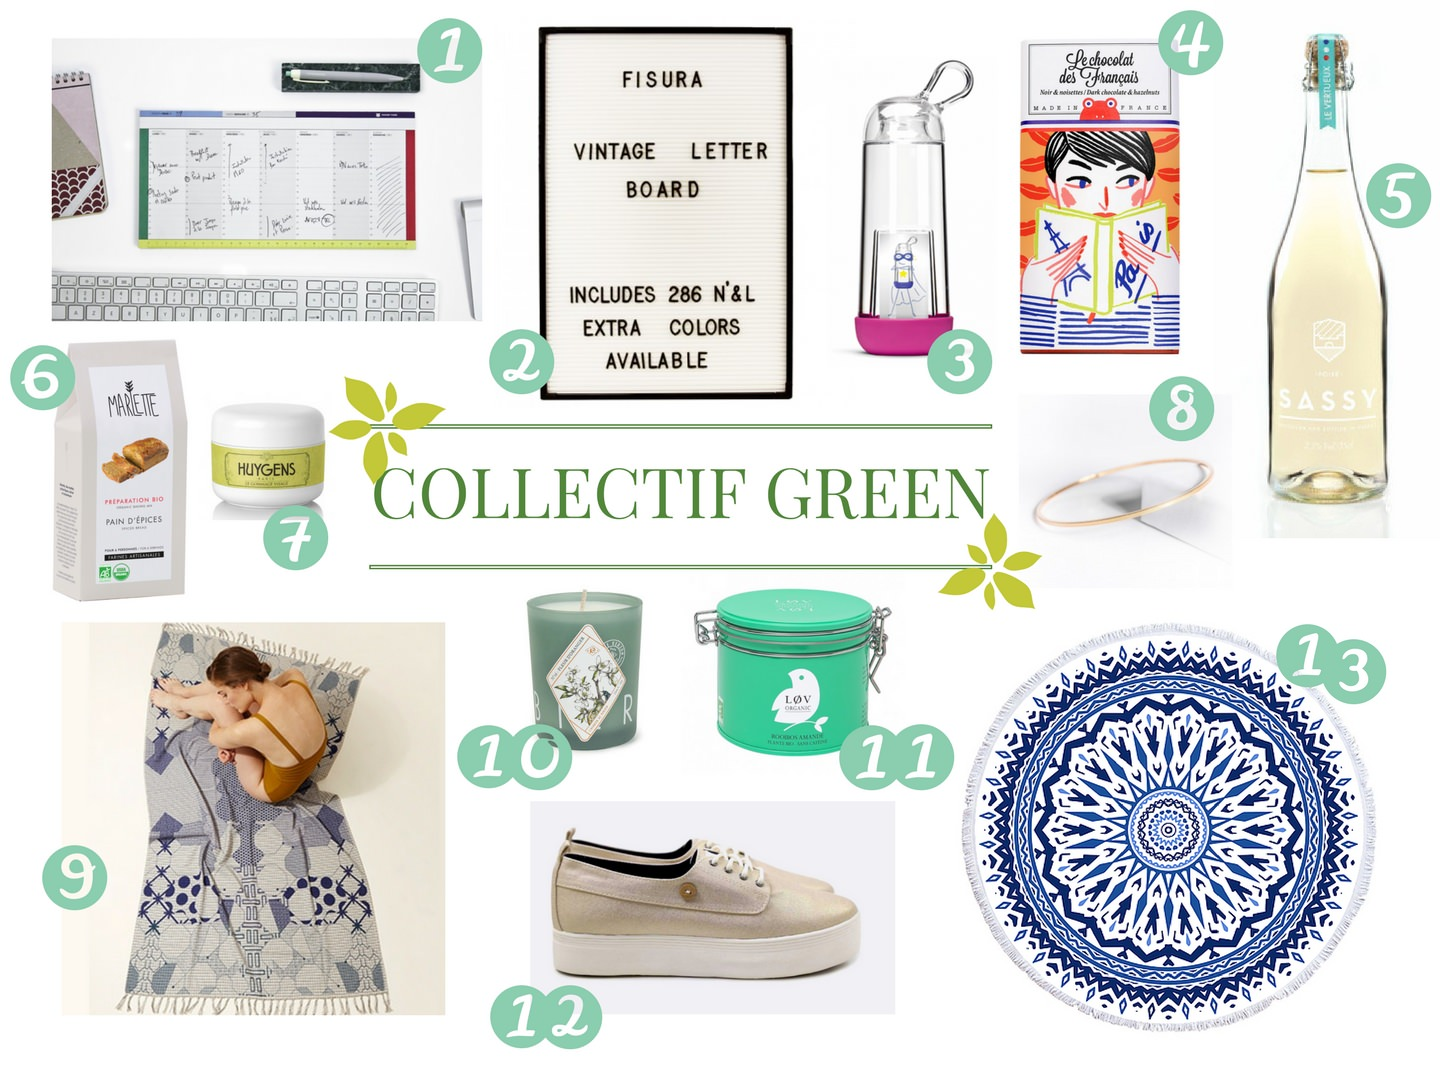 Blog-Mode-And-The-City-Lifestyle-Cinq-Petites-Choses-220-collectif-green